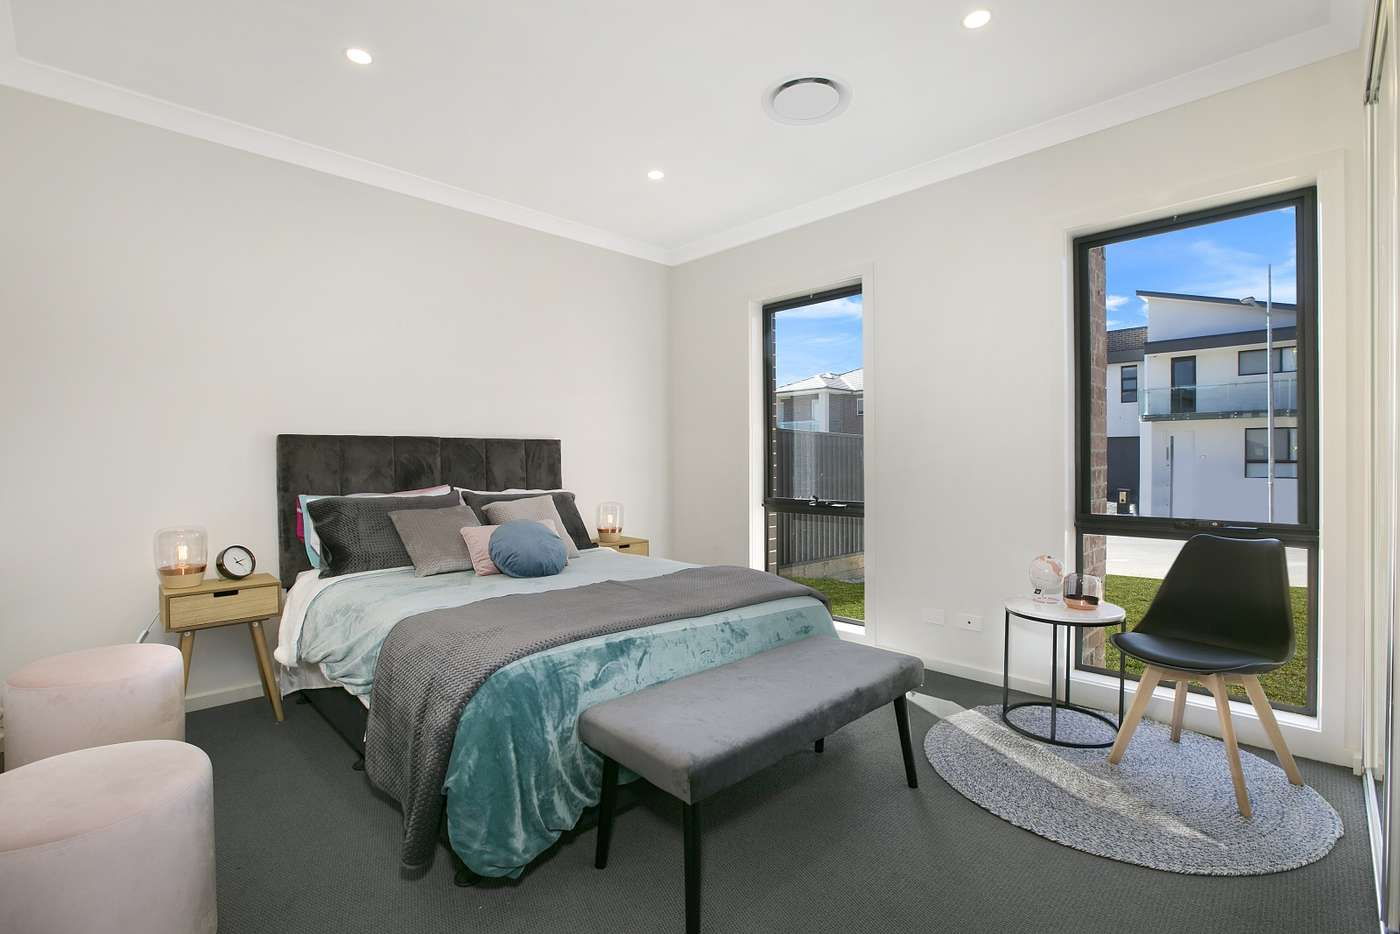 Sixth view of Homely house listing, 2 Sando Street, Oran Park NSW 2570